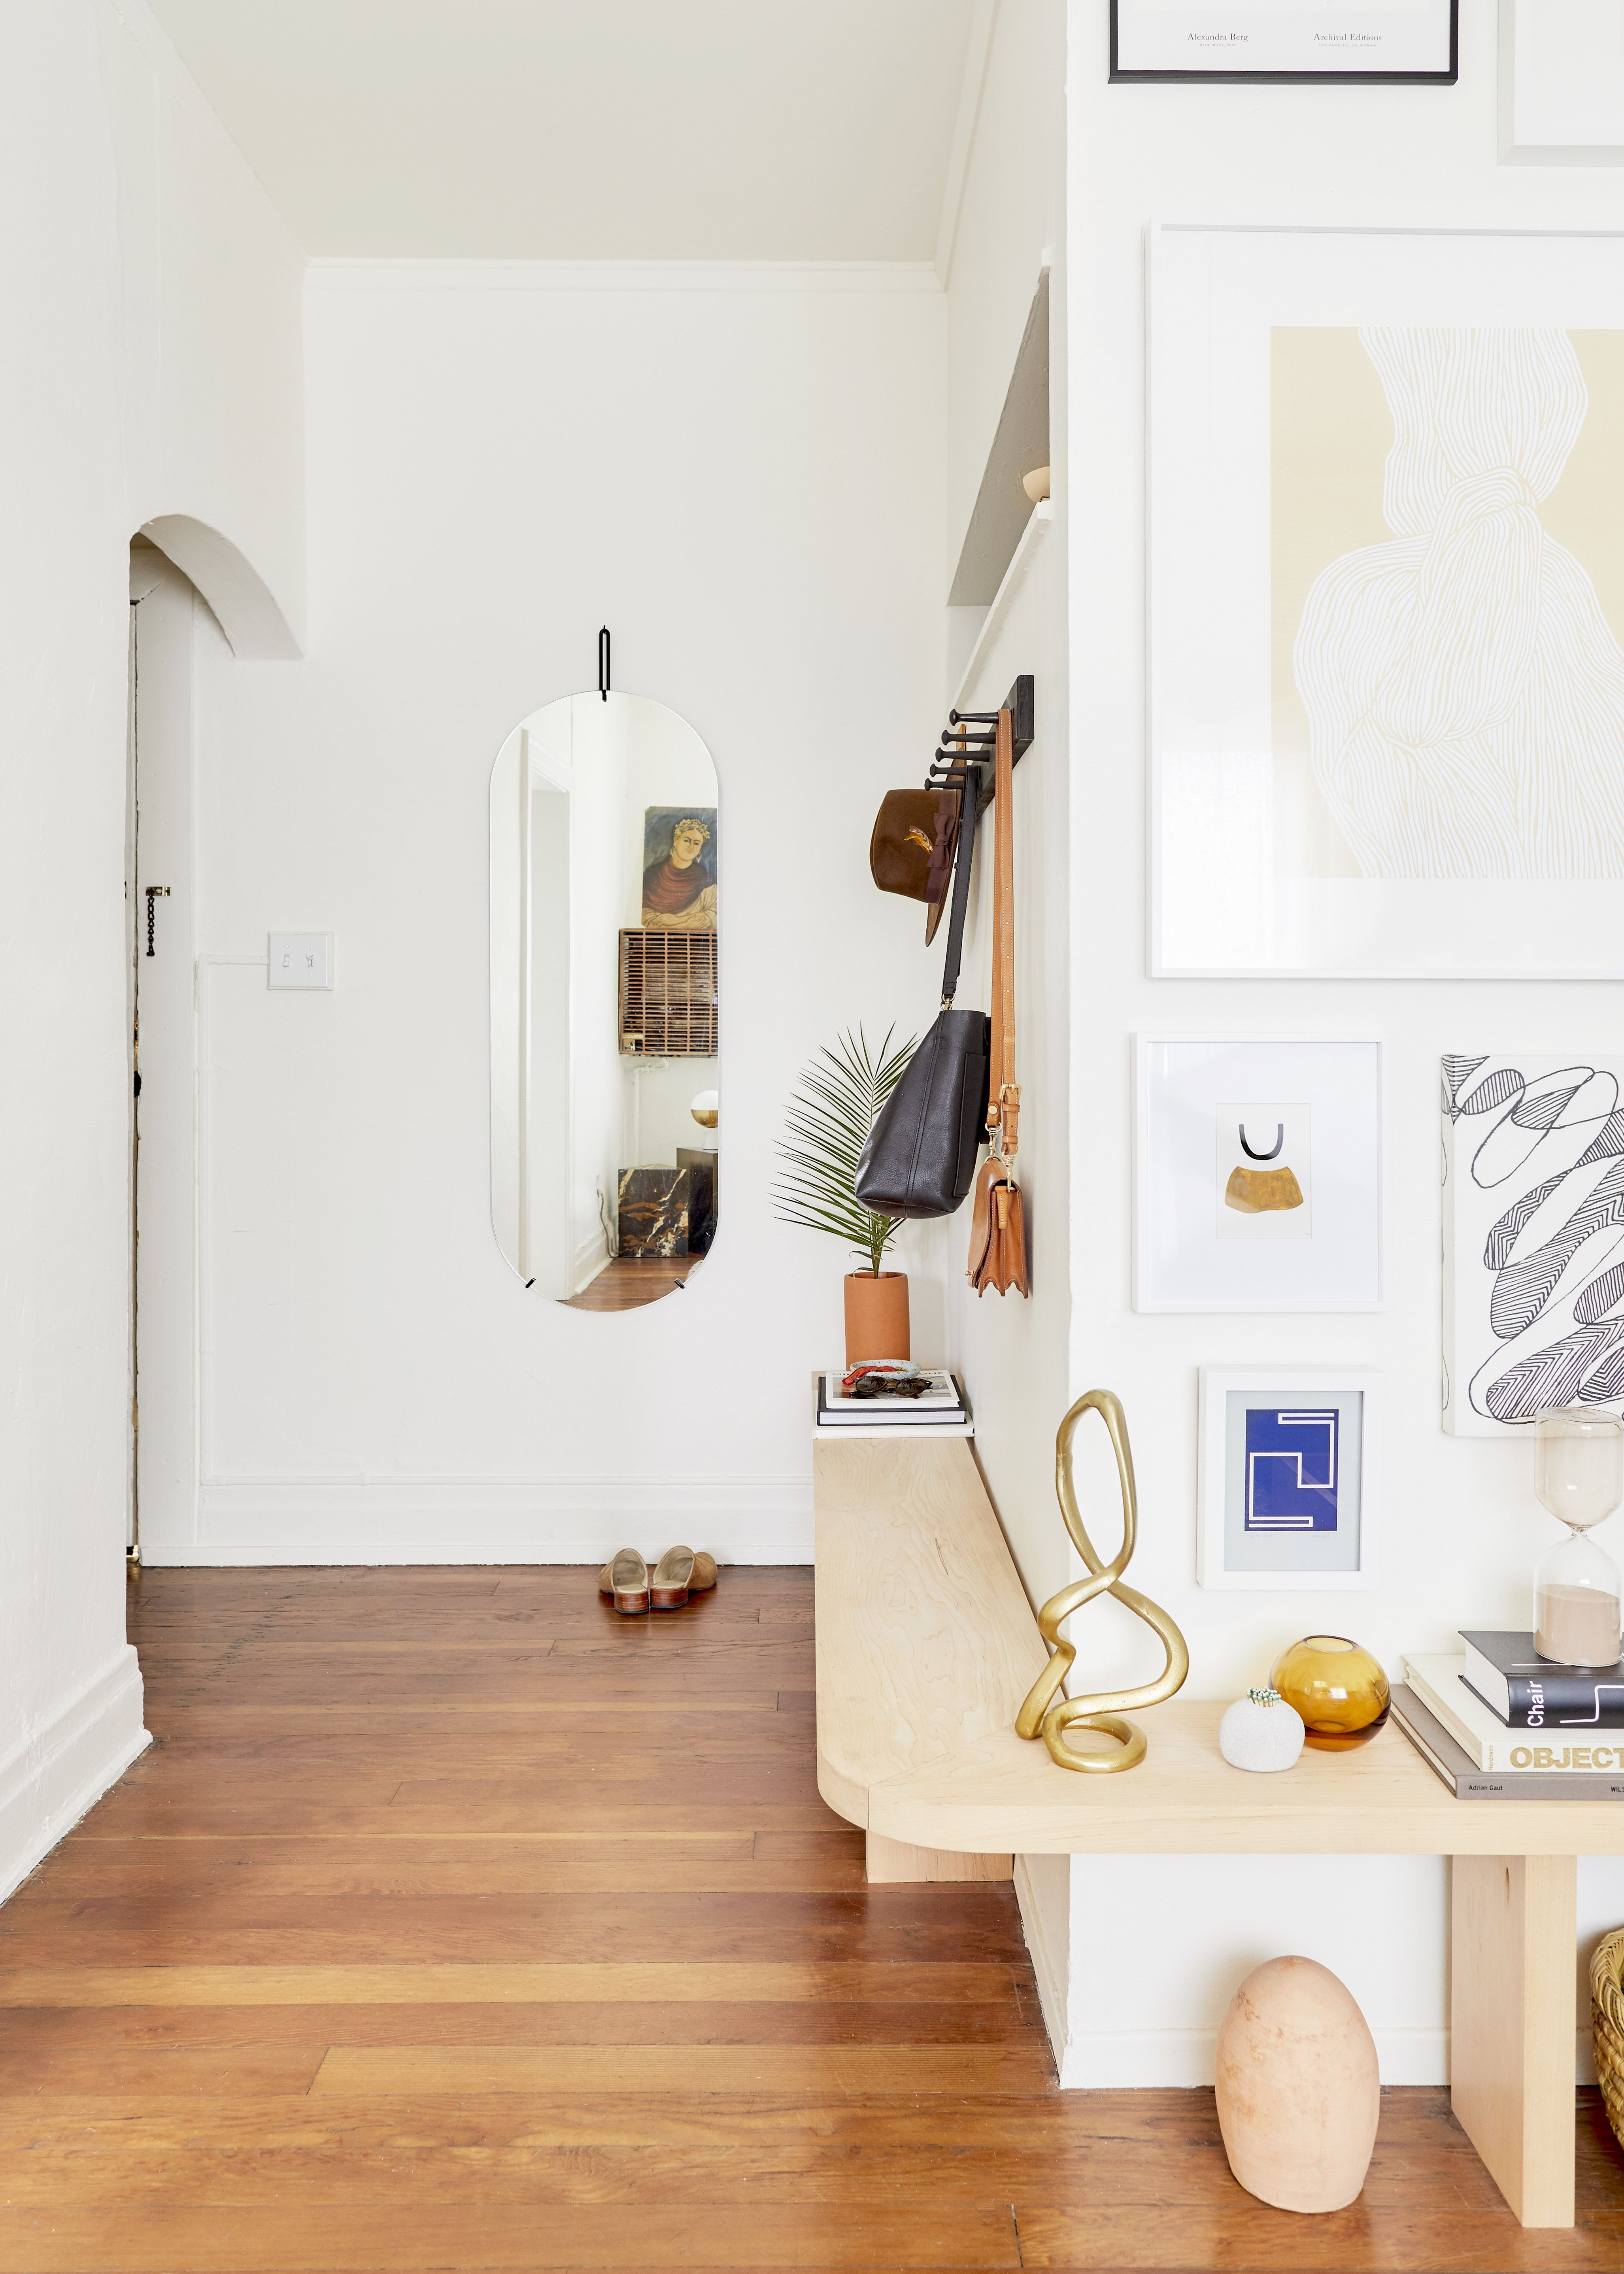 3d Room Interior Design: 6 Of The Most Common Decorating Mistakes, According To